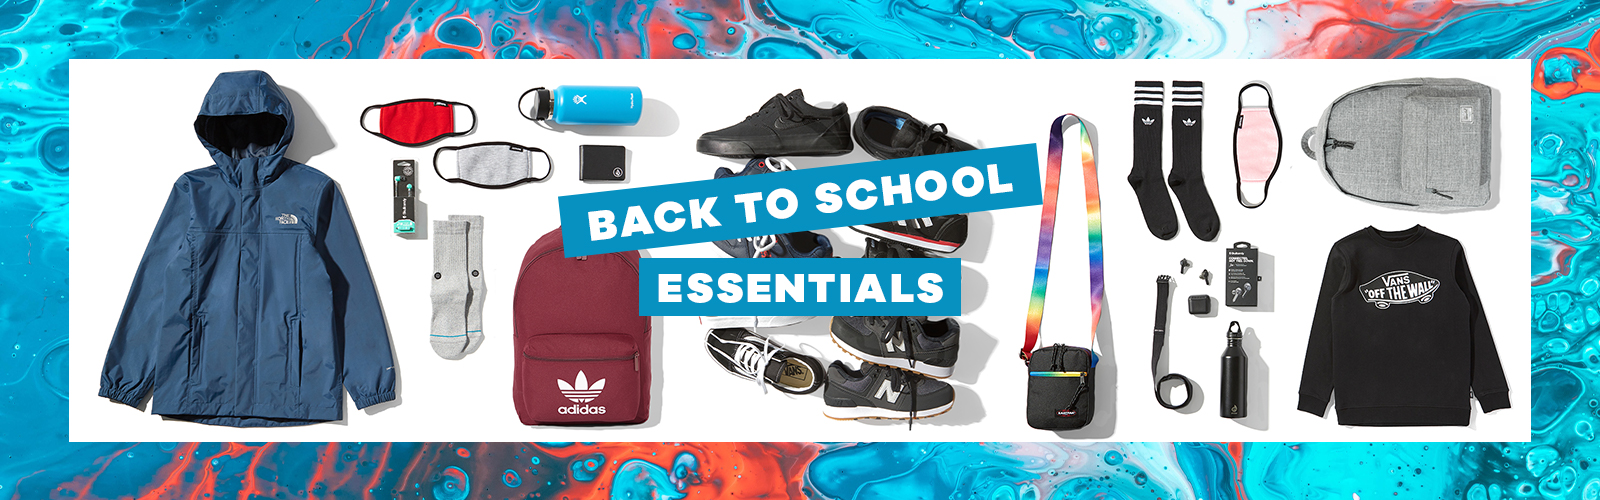 Back to school: Thinking on your feet